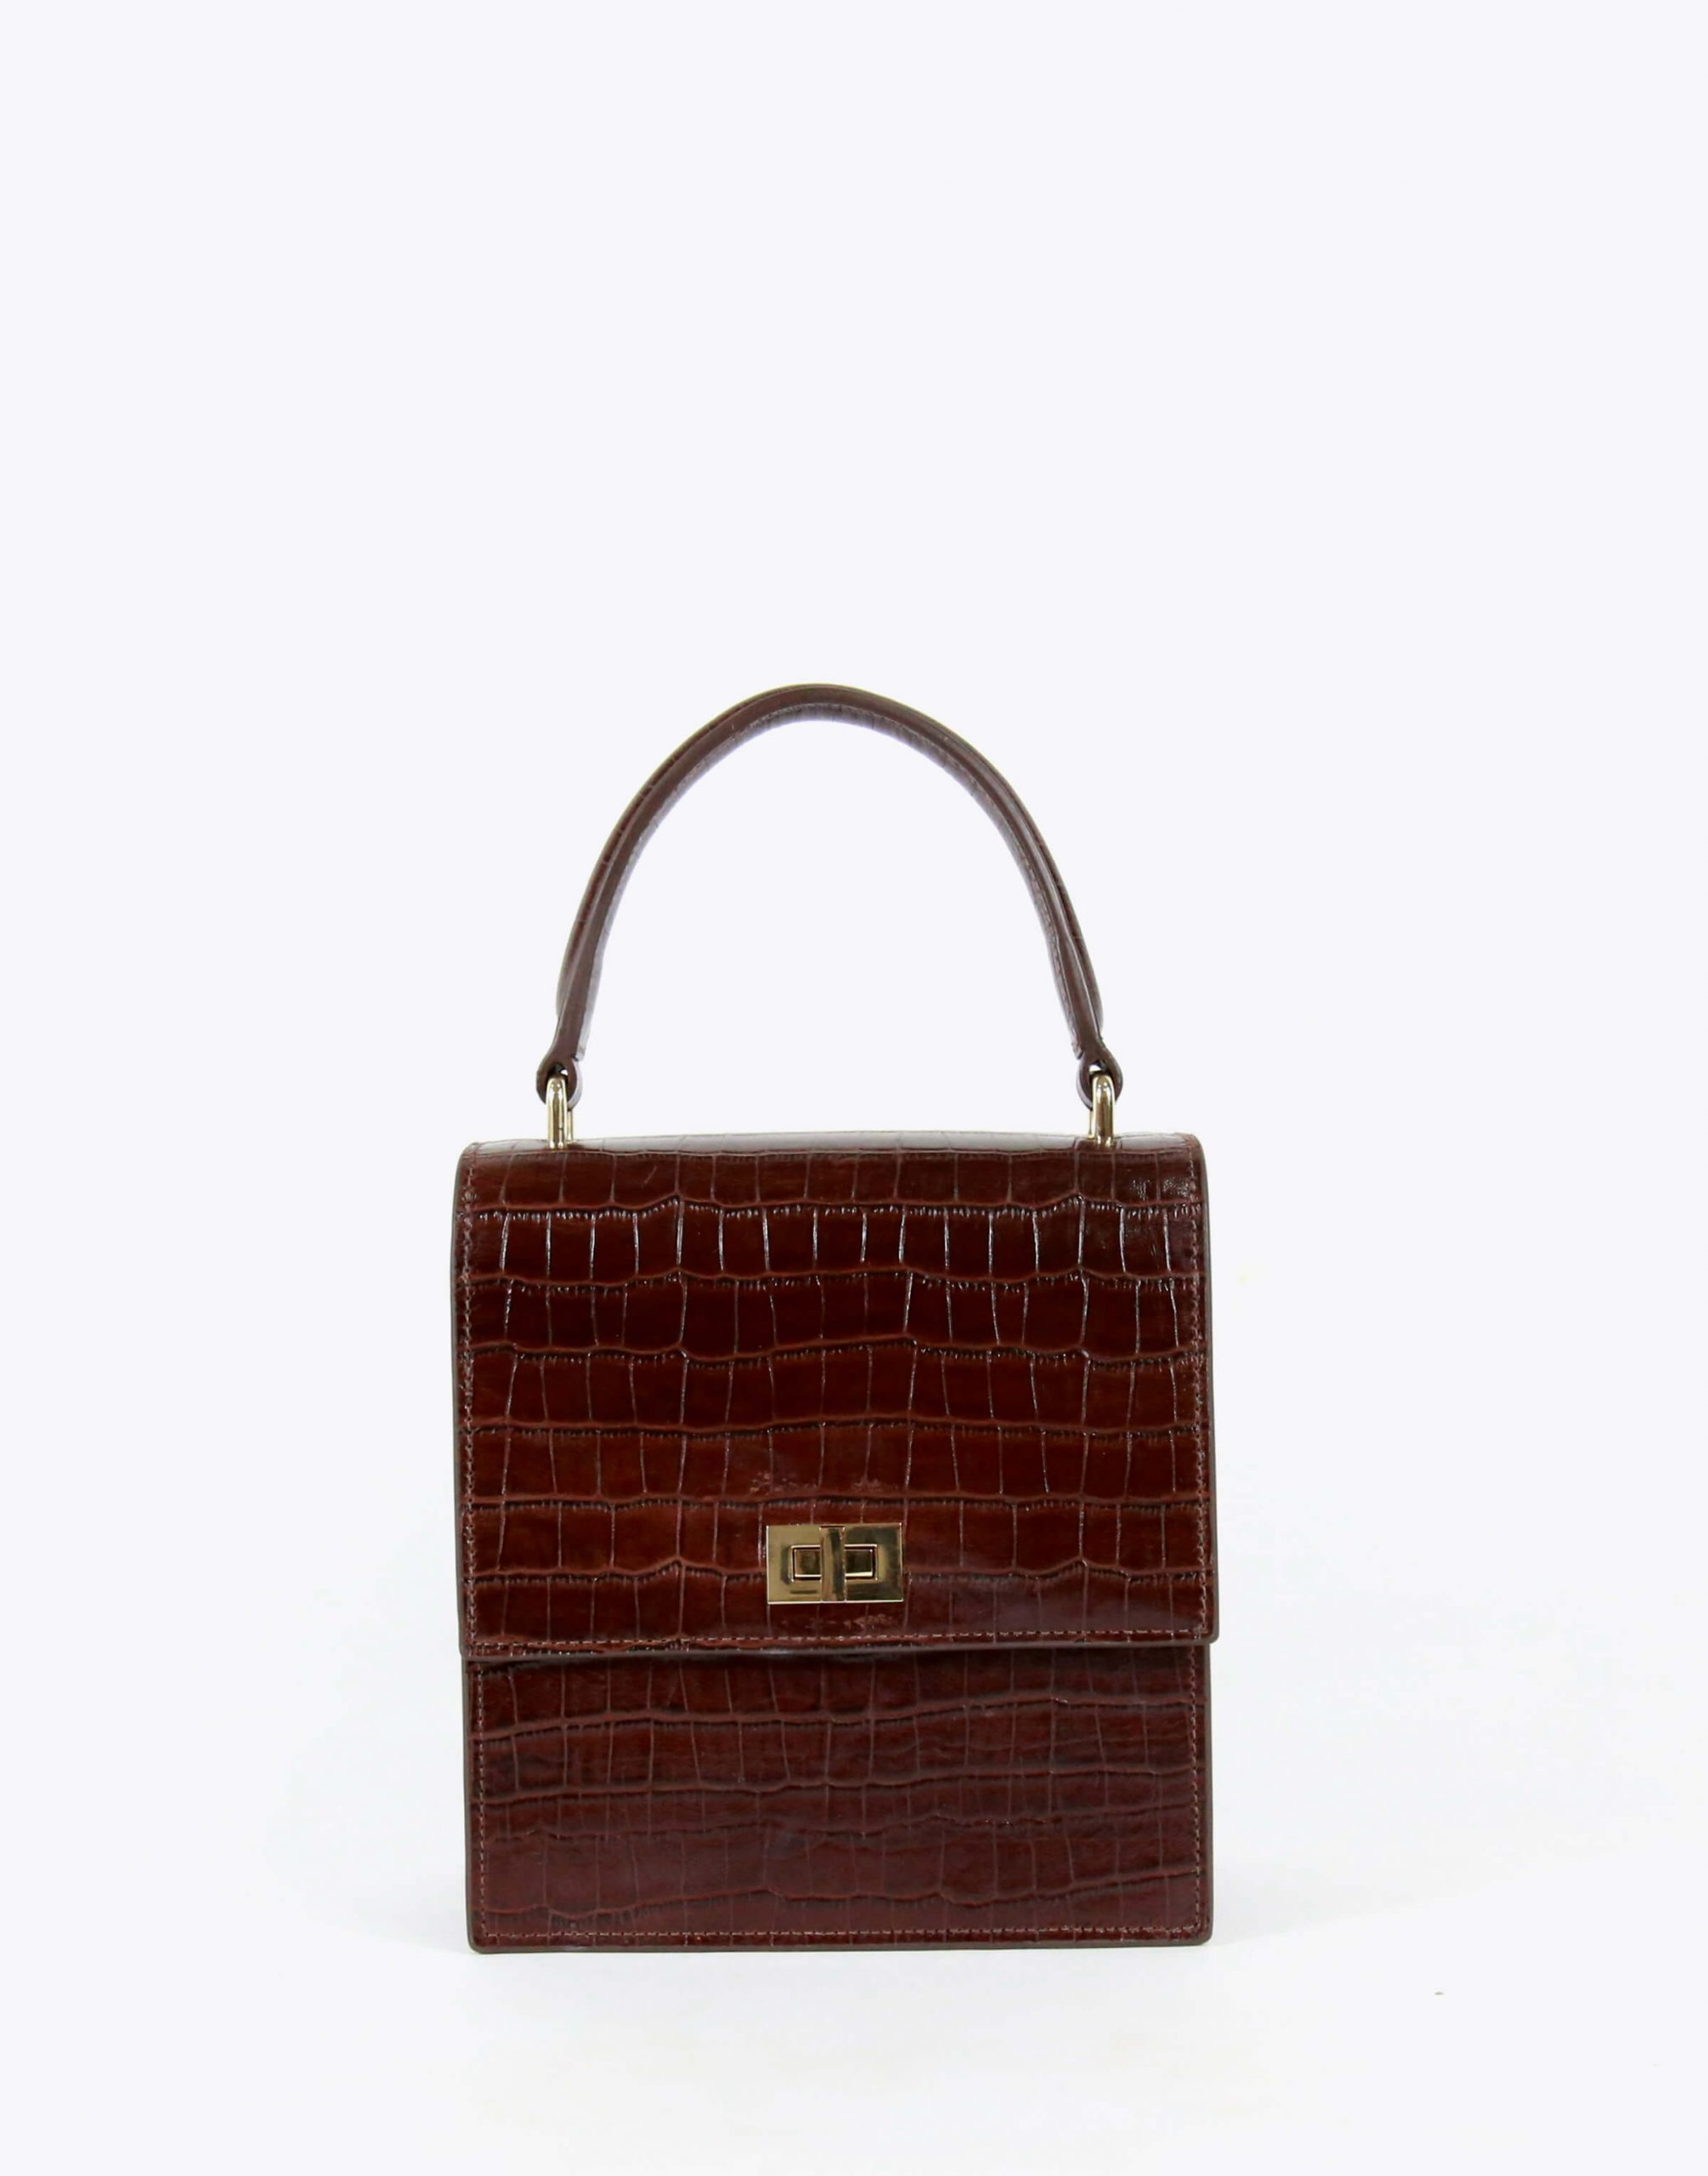 Neely & Chloe No. 19 Mini Lady Bag Croc Front View Brown